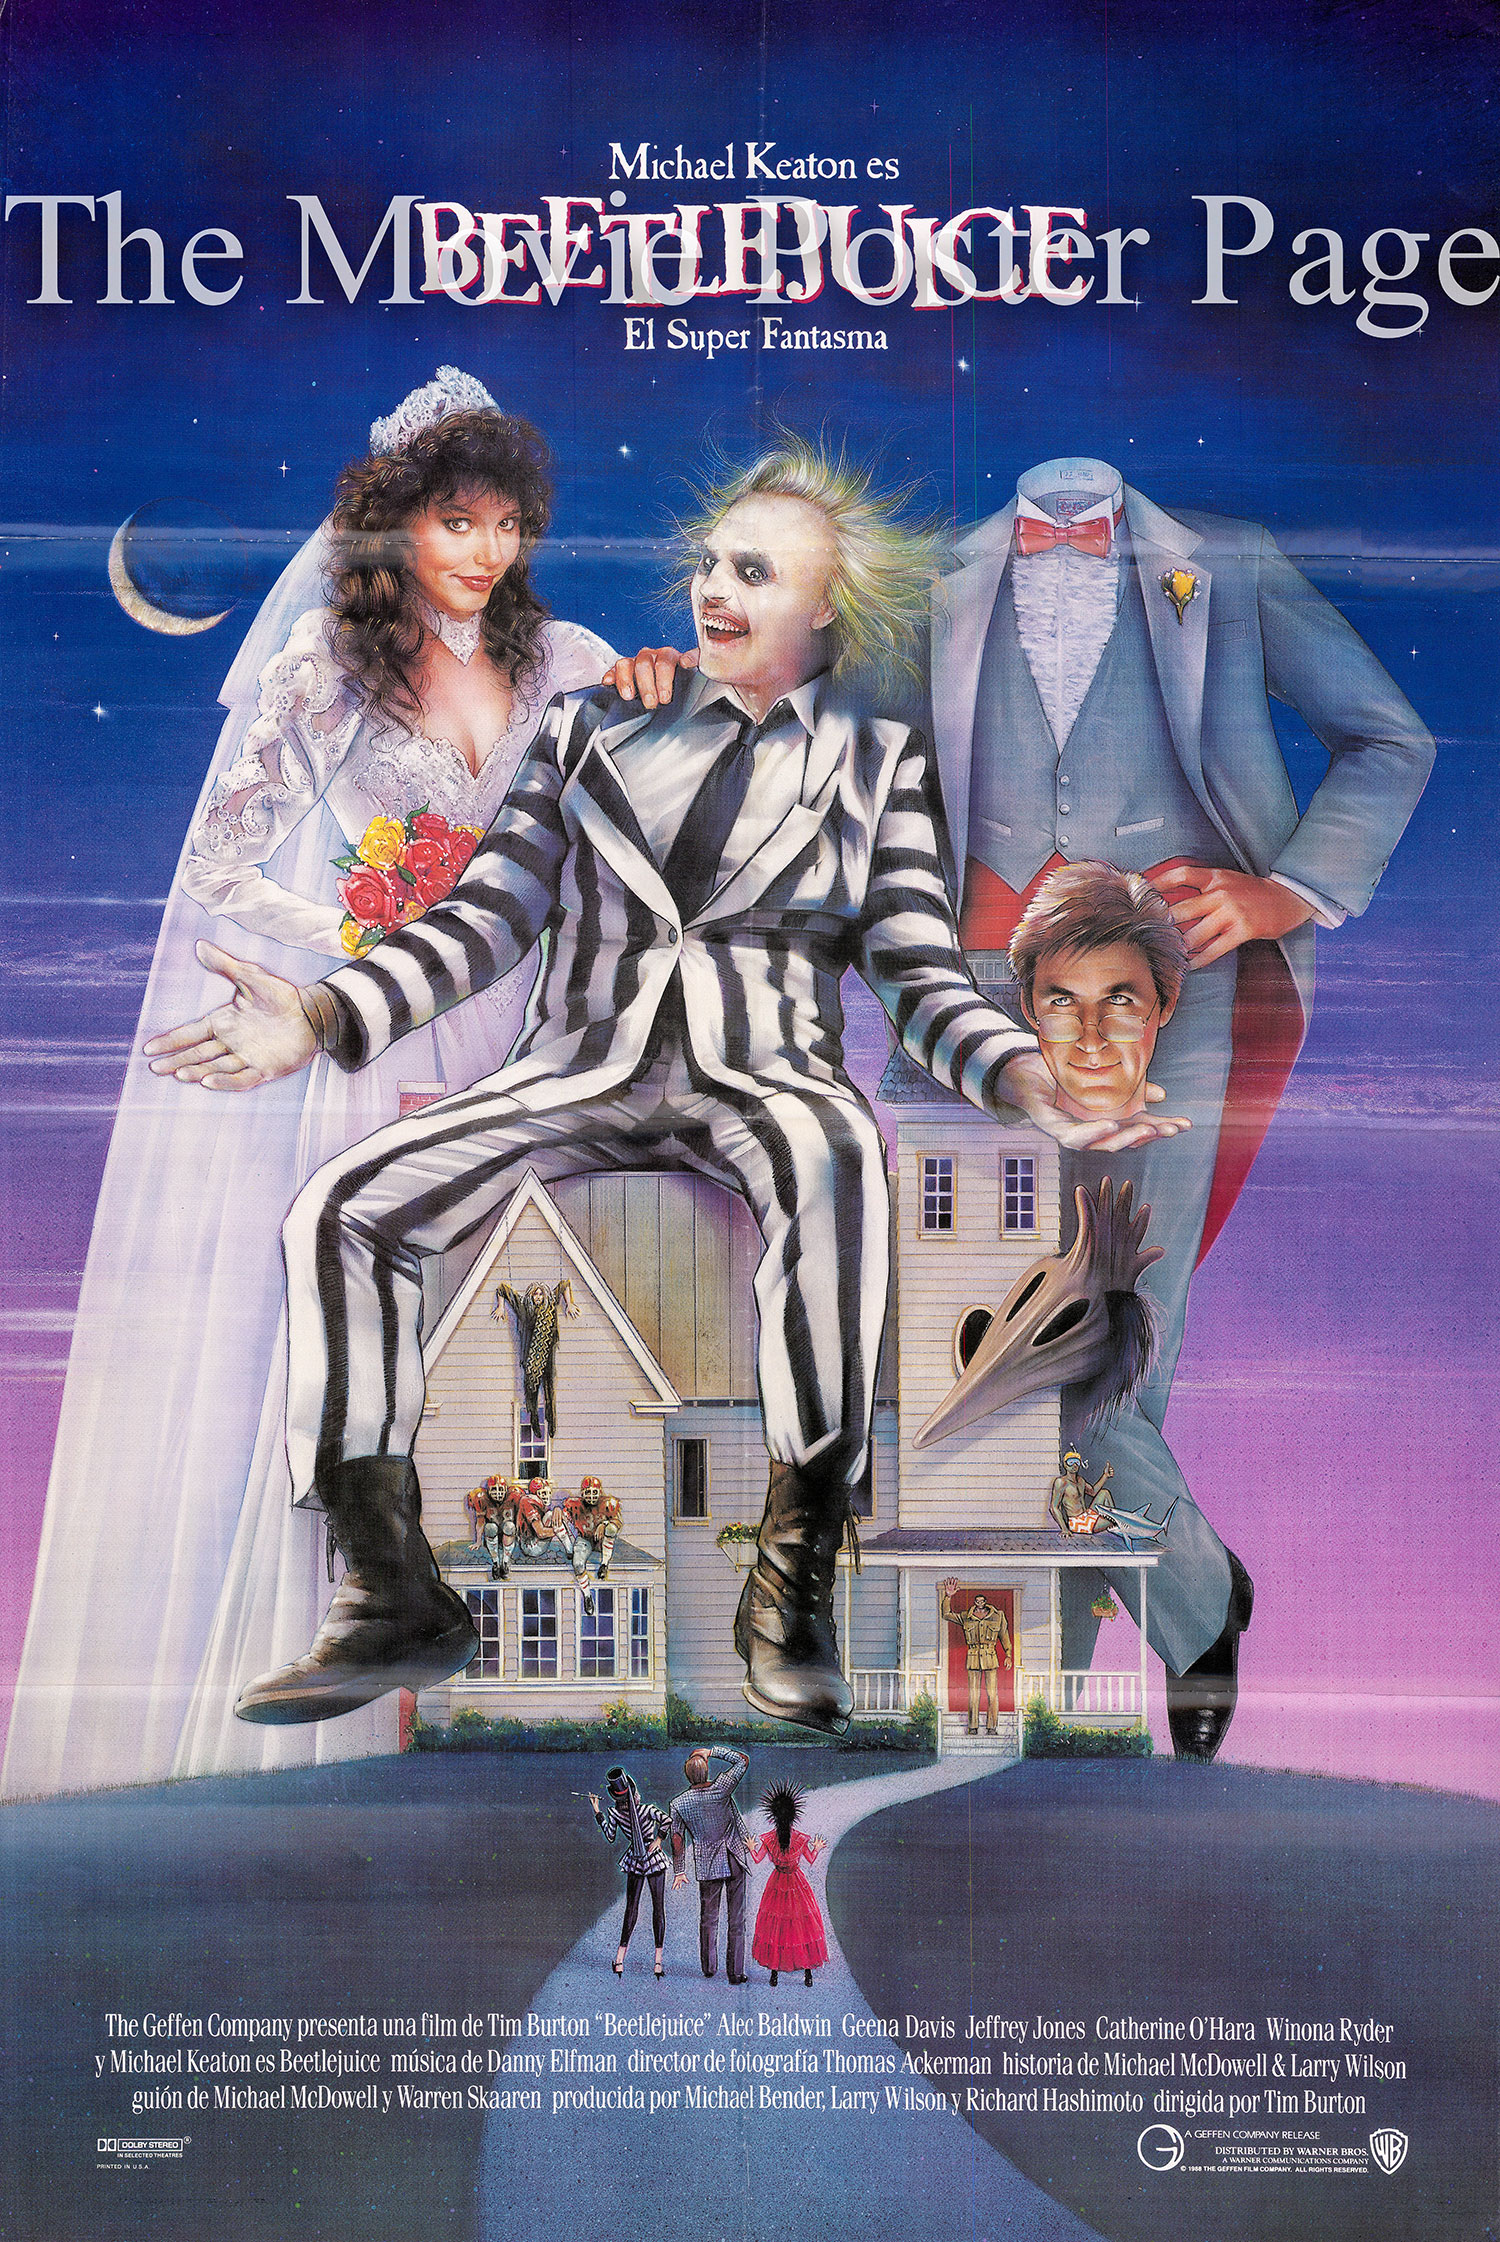 Pictured is a Spanish one-sheet for the 1988 Tim Burton film Beetlejuice starring Michael Keaton.